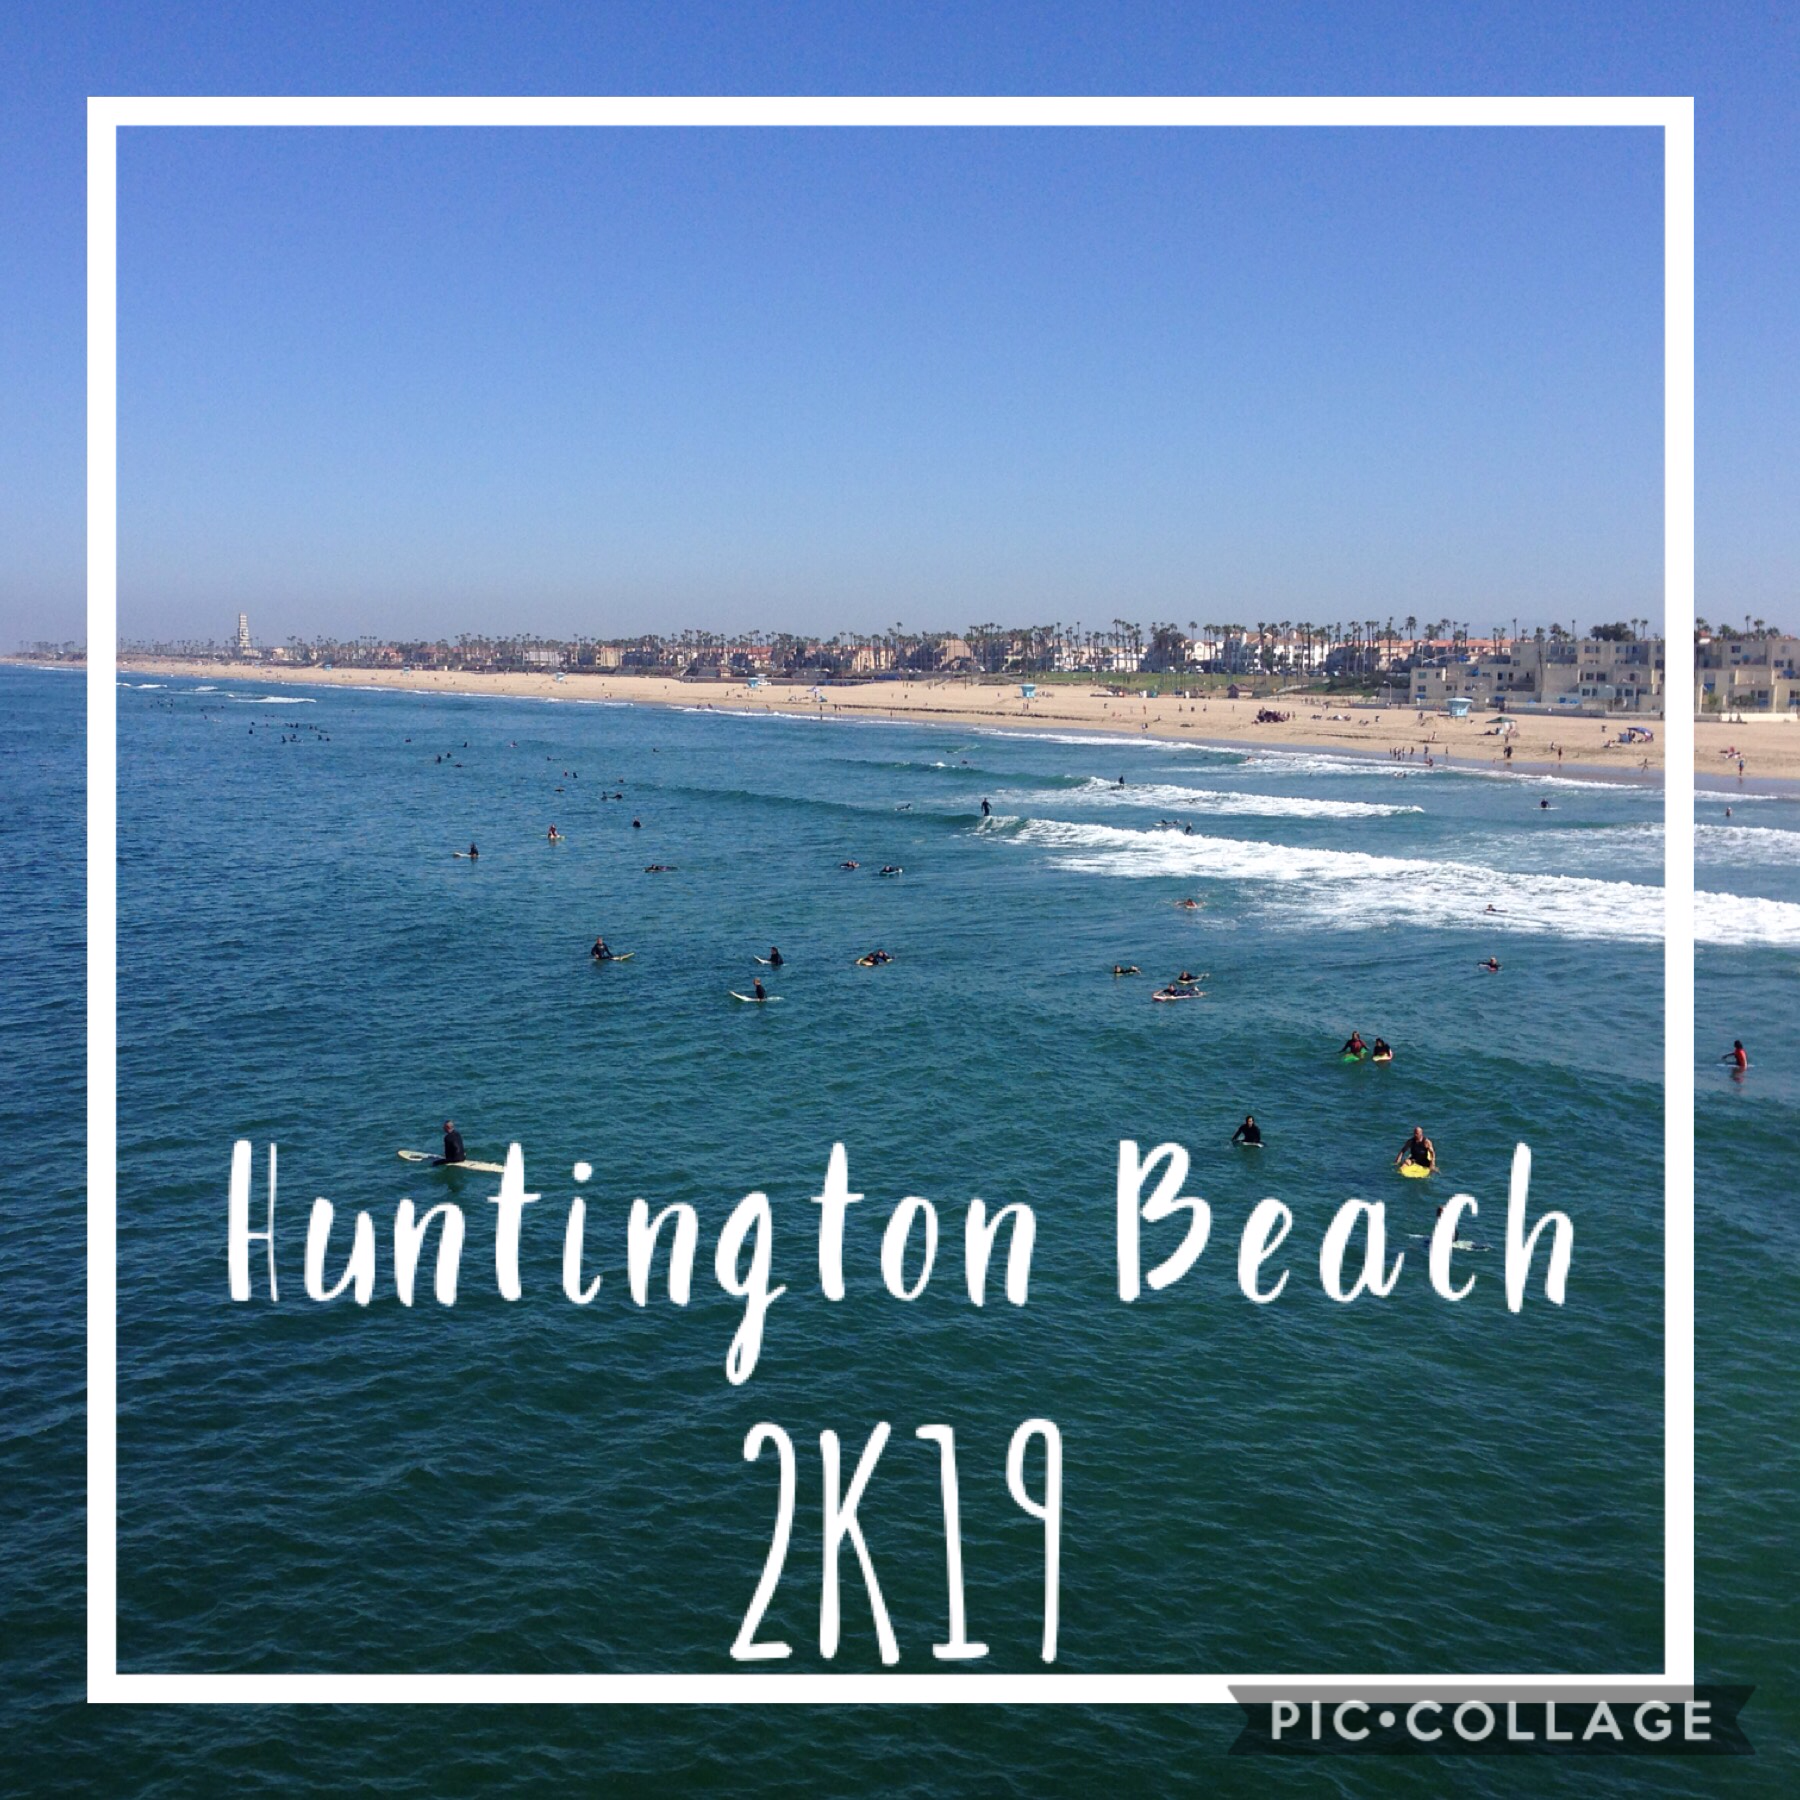 🌊tap🌊 A day at Huntington Beach in California! What a fun day in the sun